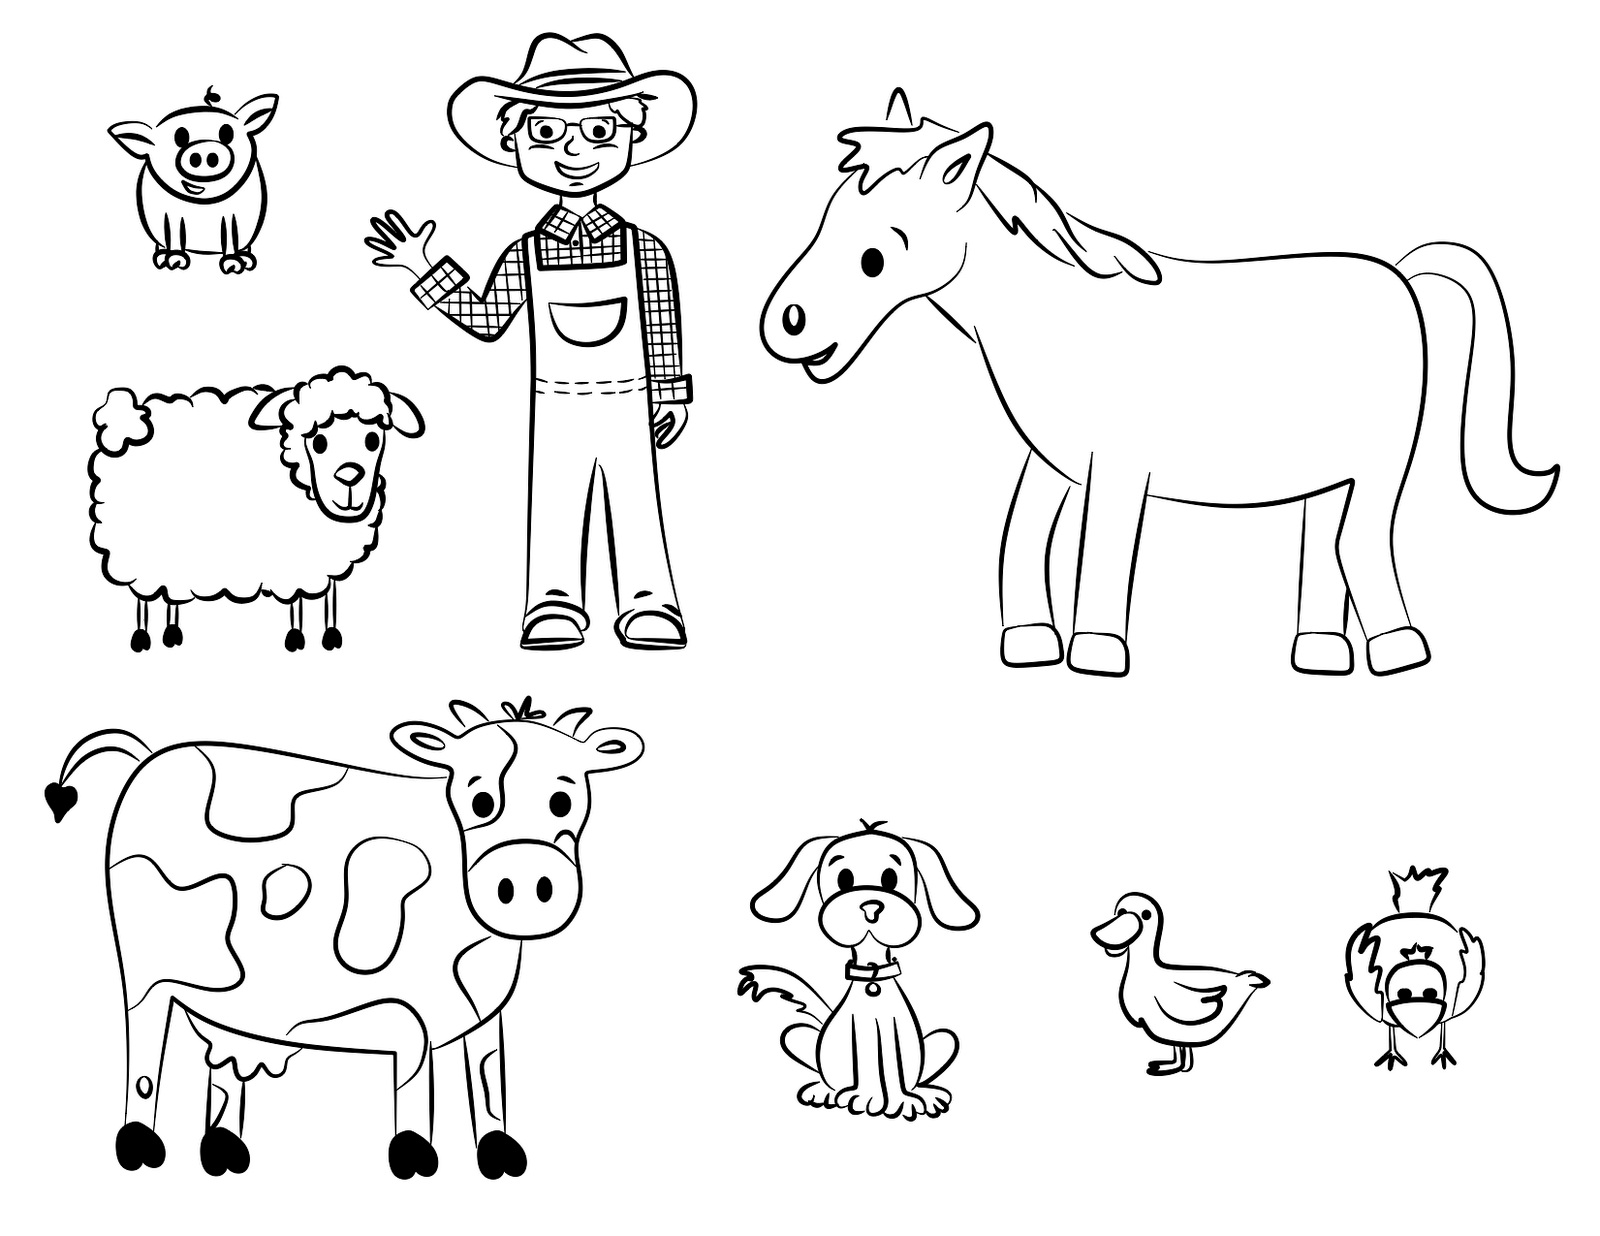 I'm excited to add another farm-related activity to my collection of farm printables today. I'm especially excited about this Farm Animals Bingo game because it uses real photographs of farm animals, which helps children learn to identify them.